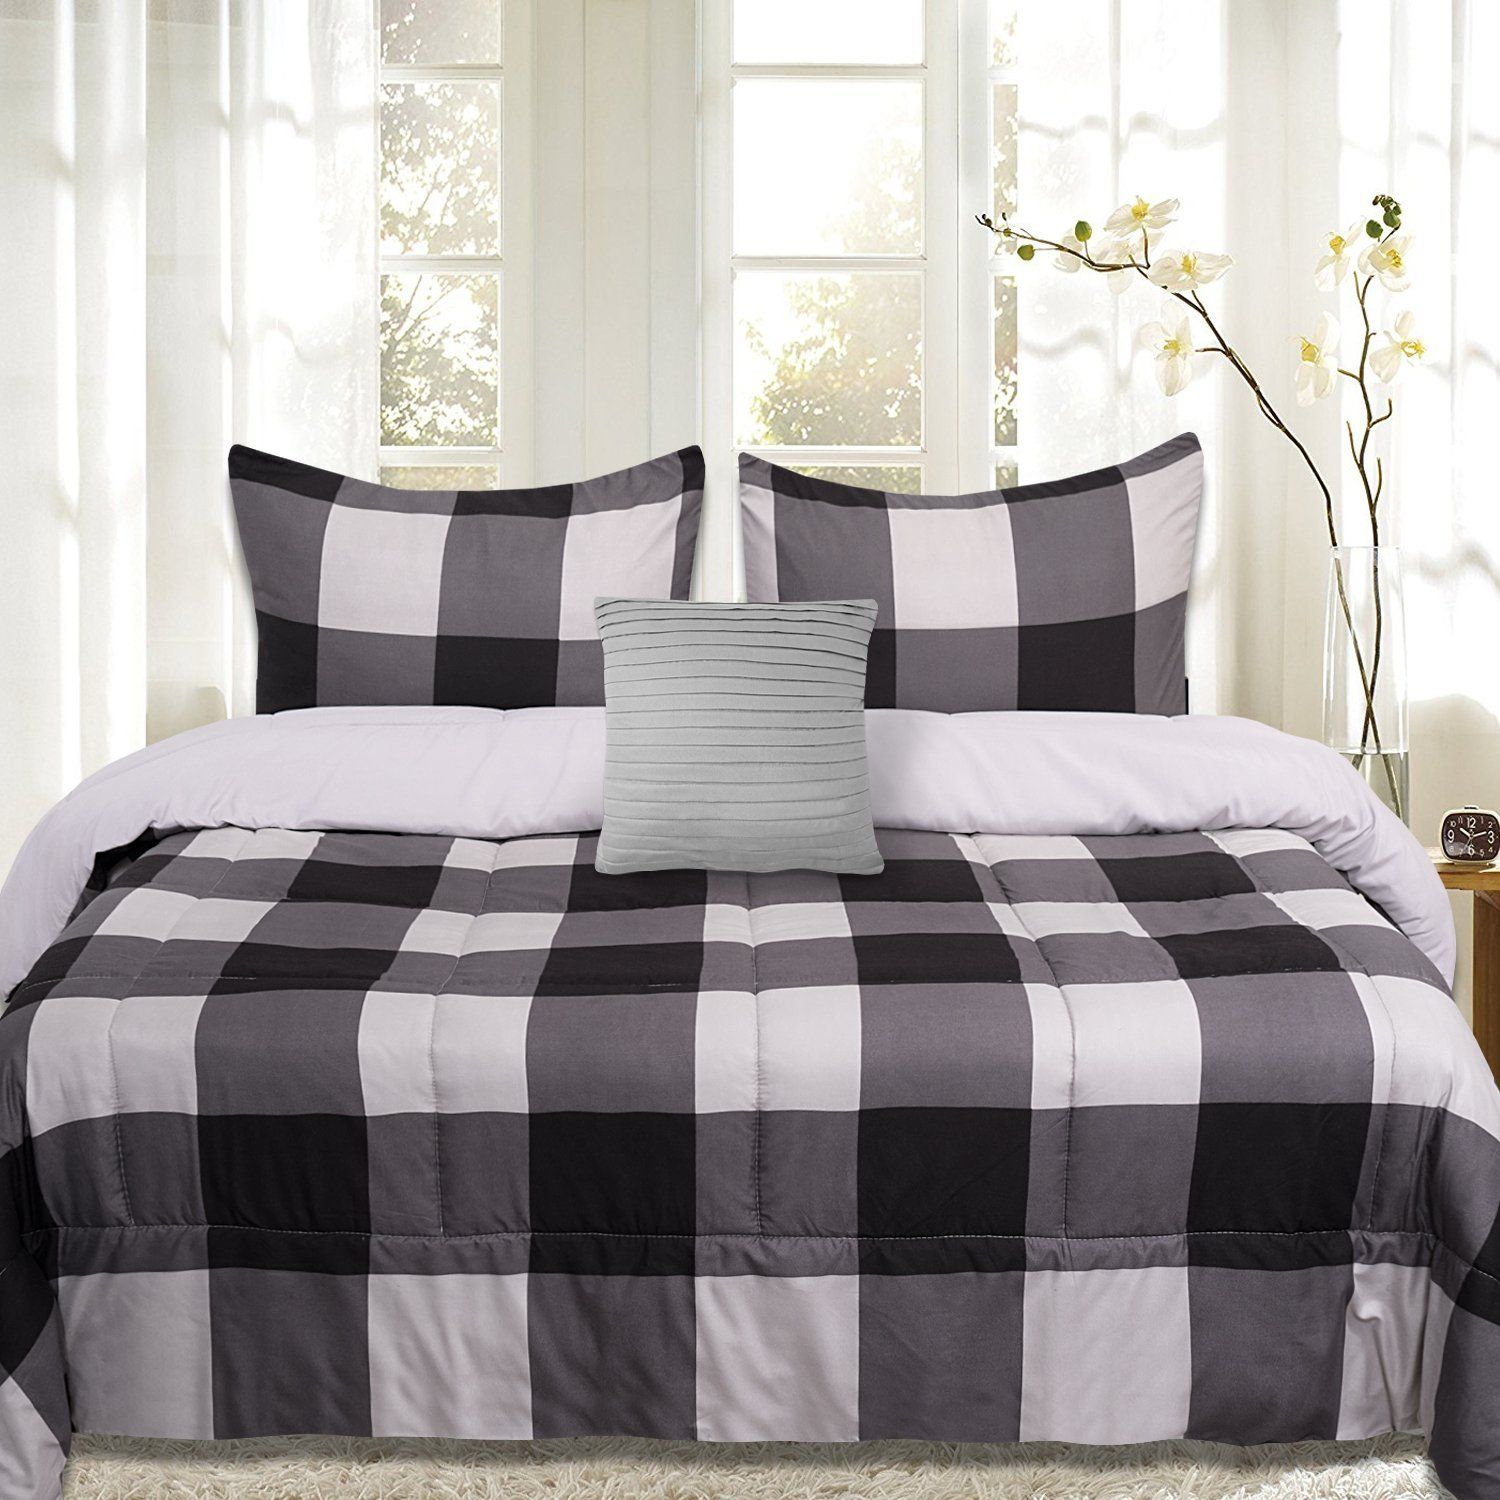 Luxury Red /& Black Buffalo Checkered Down Alternative Comforter and Pillow Shams